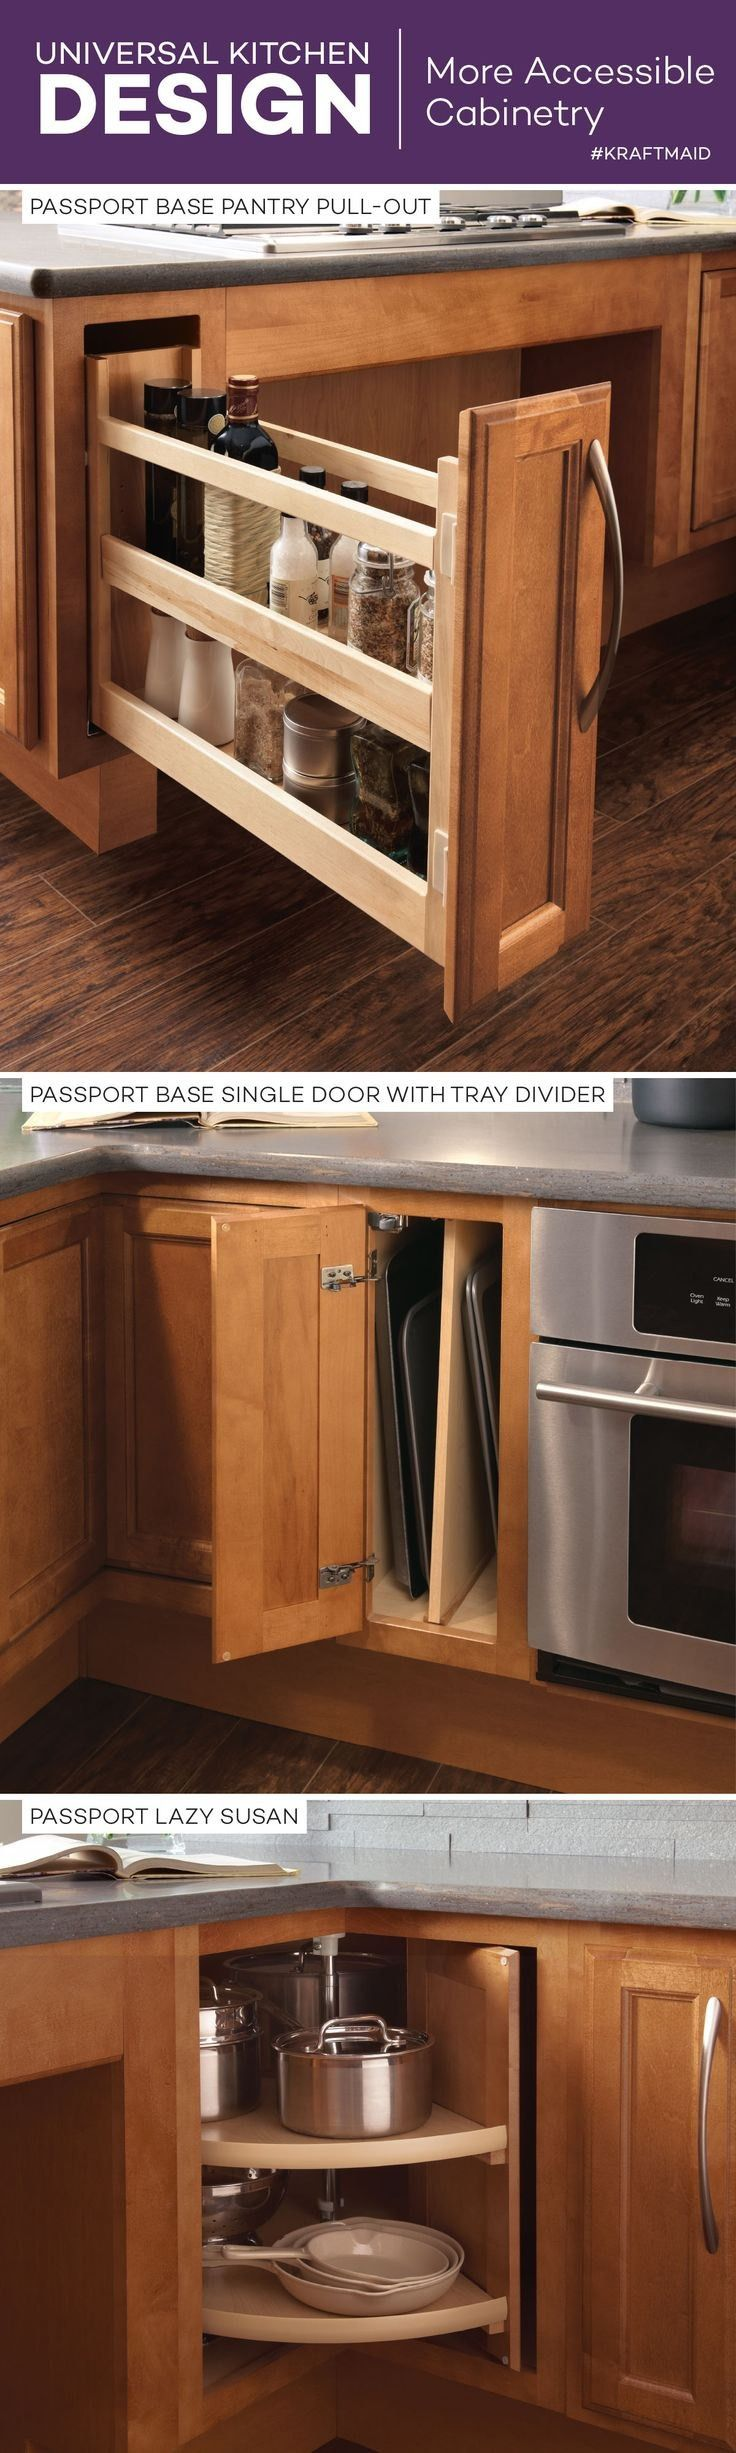 Universal Kitchen Design Ideas Check more at http://www ...